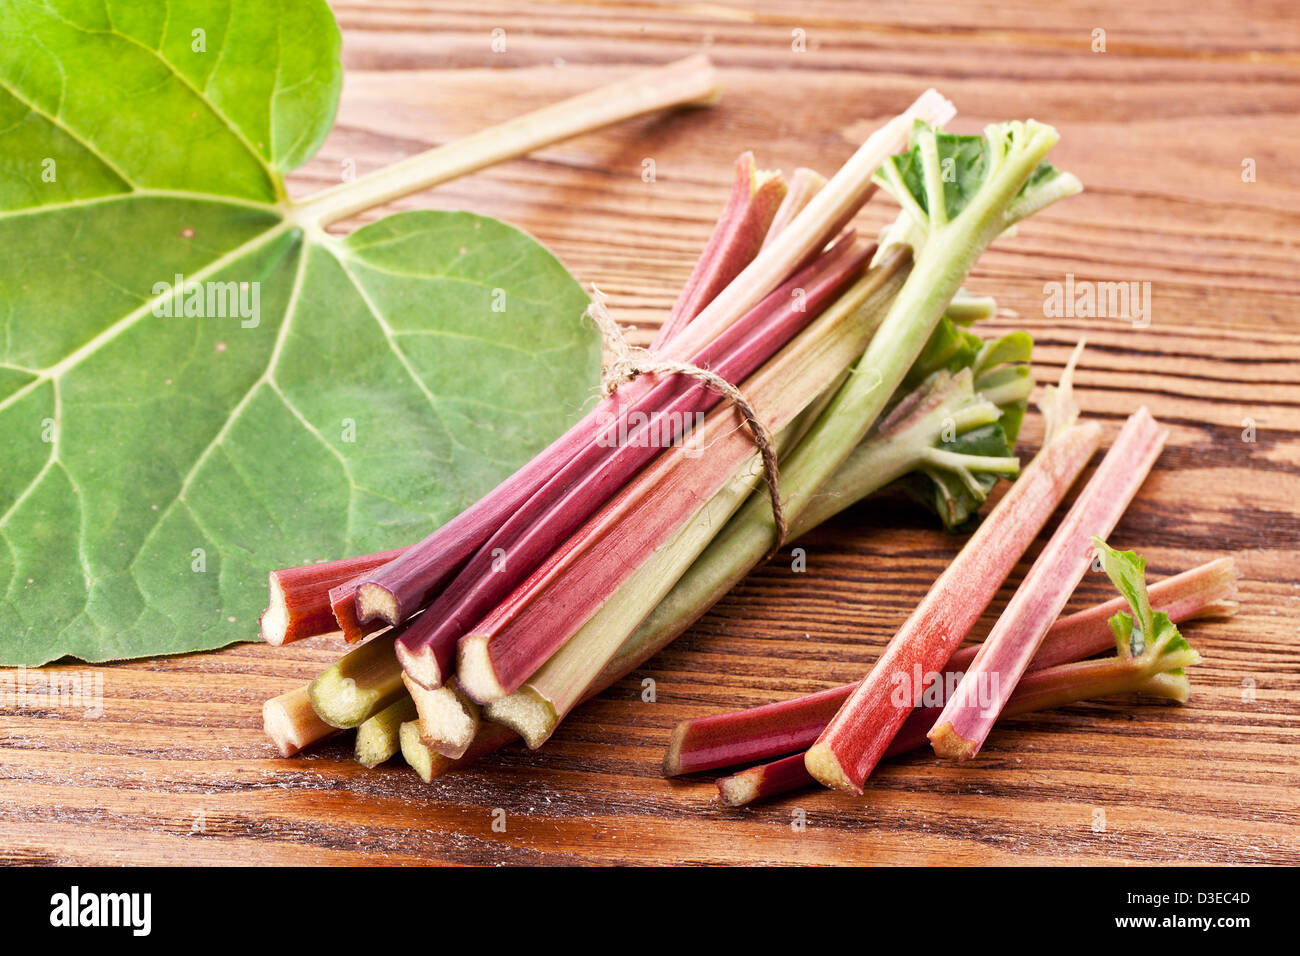 Rhubarb stalks on a wooden table. - Stock Image